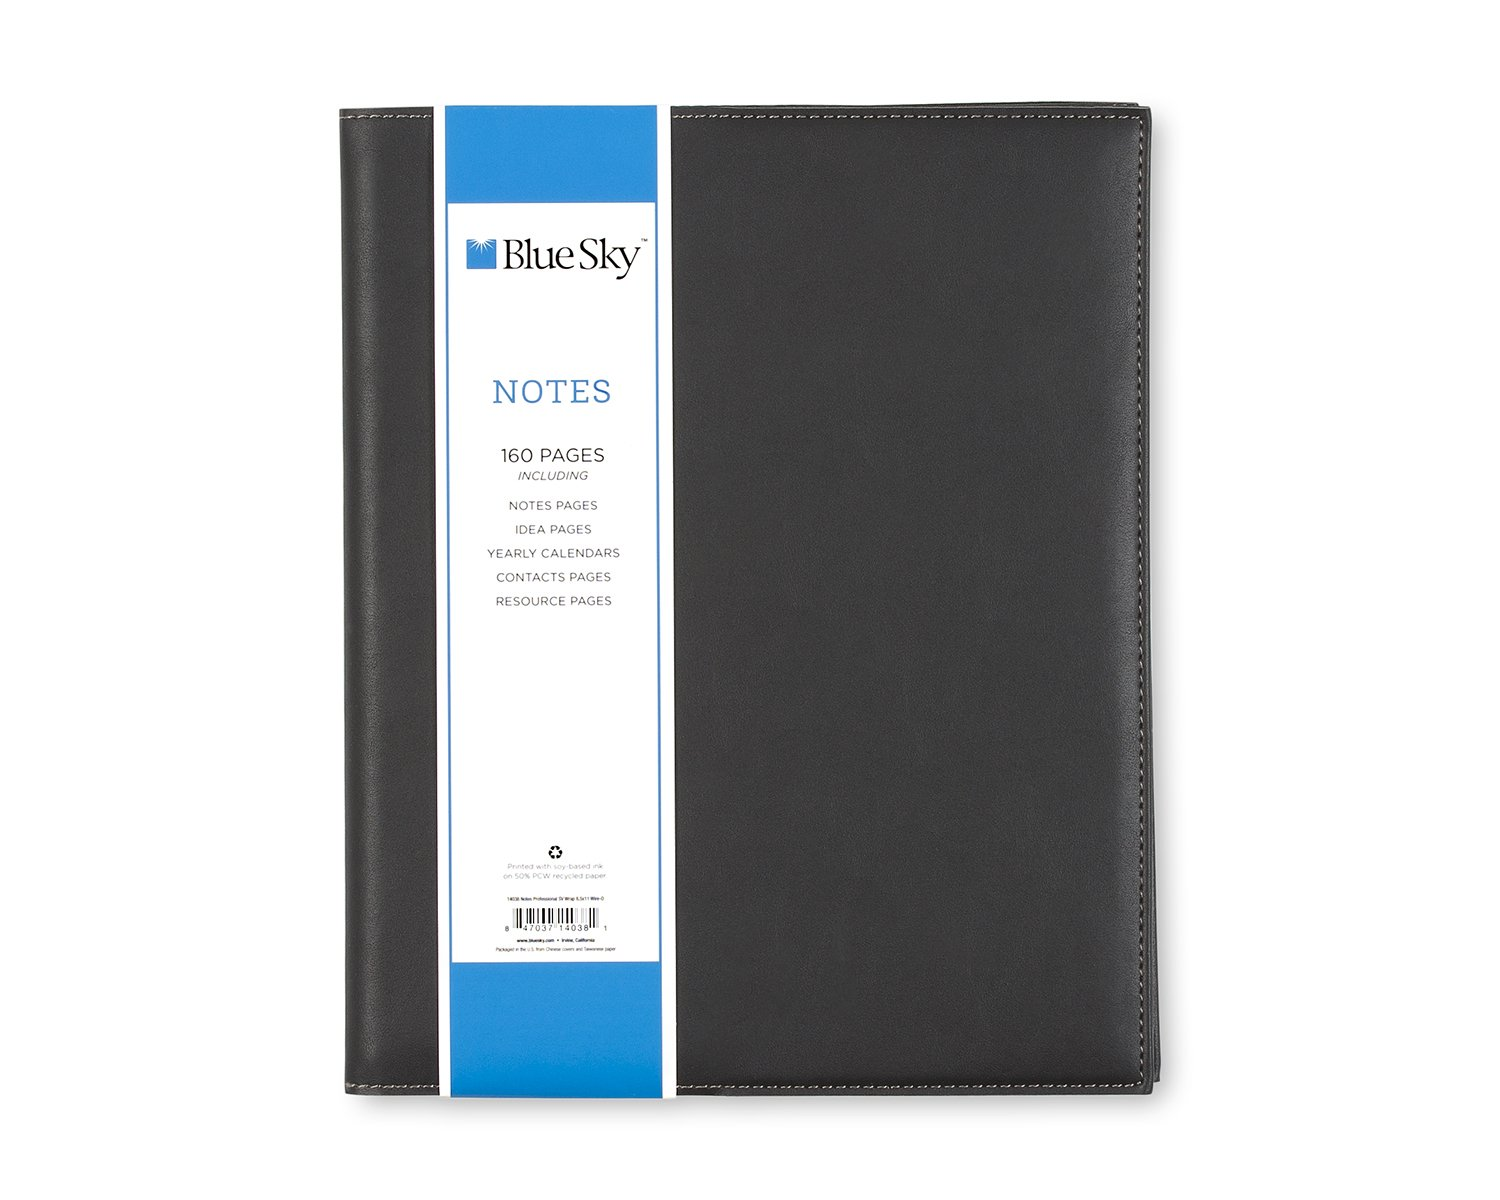 Blue Sky Professional Notebook, Leather-Like Textured Cover, Twin-Wire Binding, 8.5'' x 11'', Black by Blue Sky (Image #5)